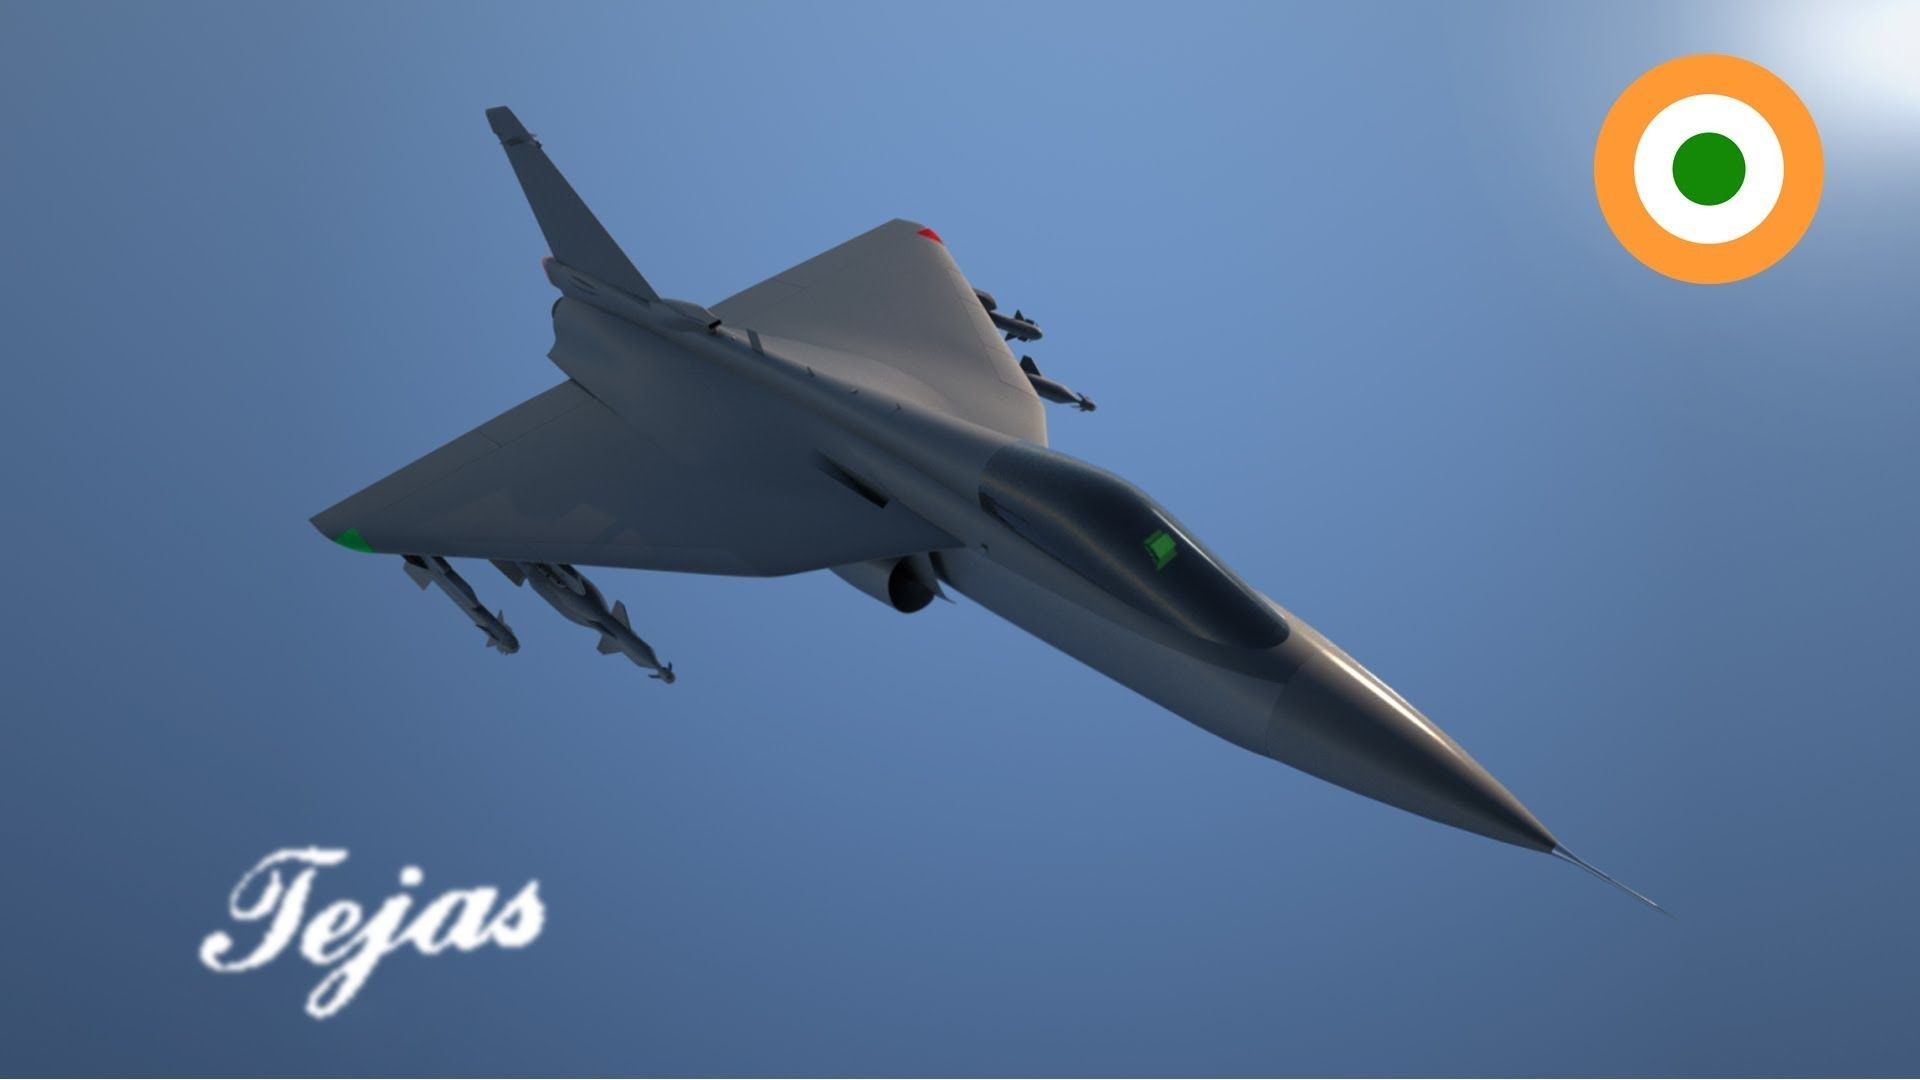 Res: 1920x1080, Discover ideas about Air Force Images